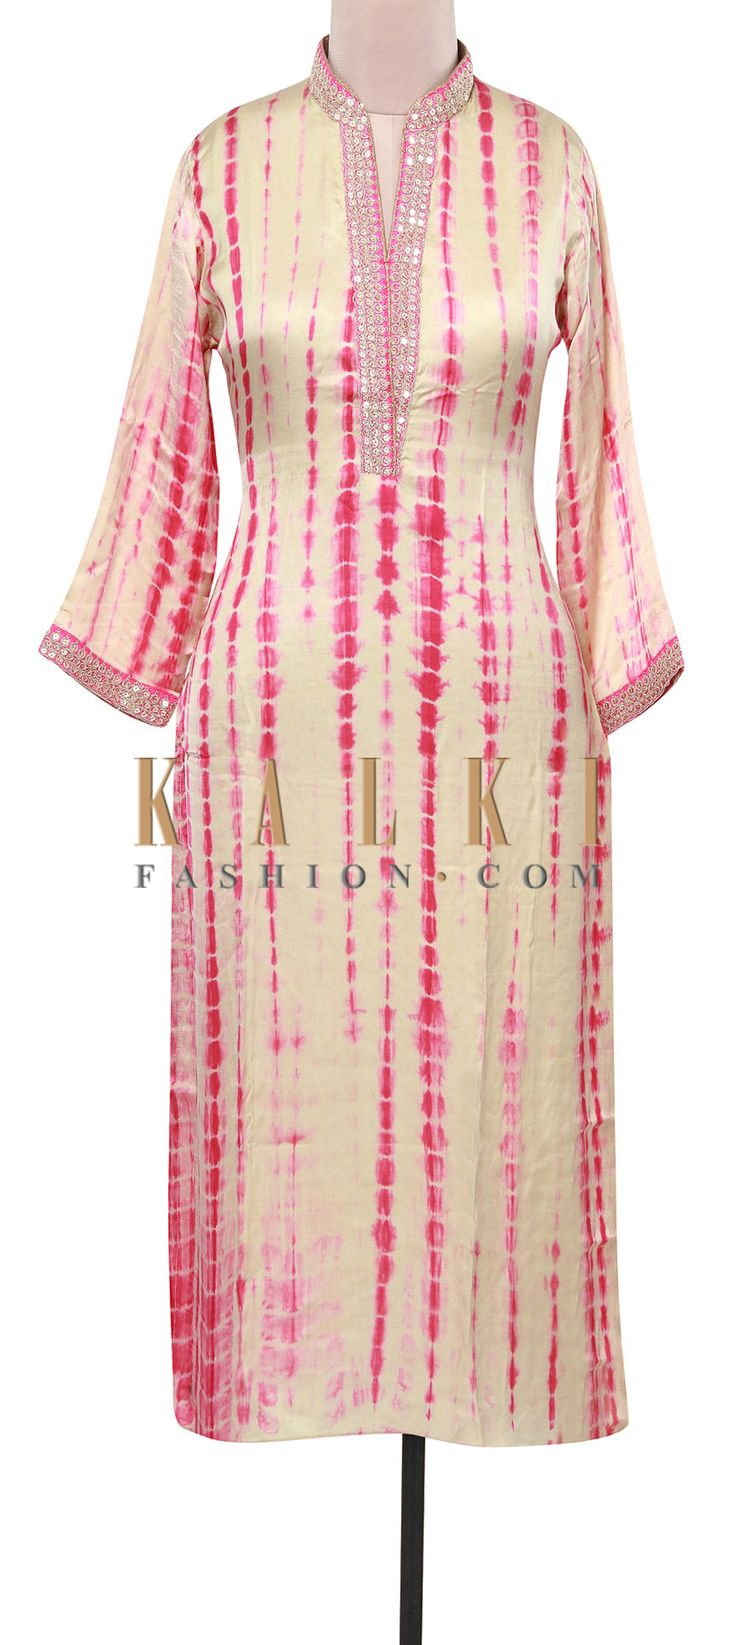 Buy Online from the link below. We ship worldwide (Free Shipping over US$100). Product SKU - 309136.Product Link - http://www.kalkifashion.com/cream-and-pink-tie-and-dye-kurti-adorn-in-zari-and-sequin-embroidery-only-on-kalki.html